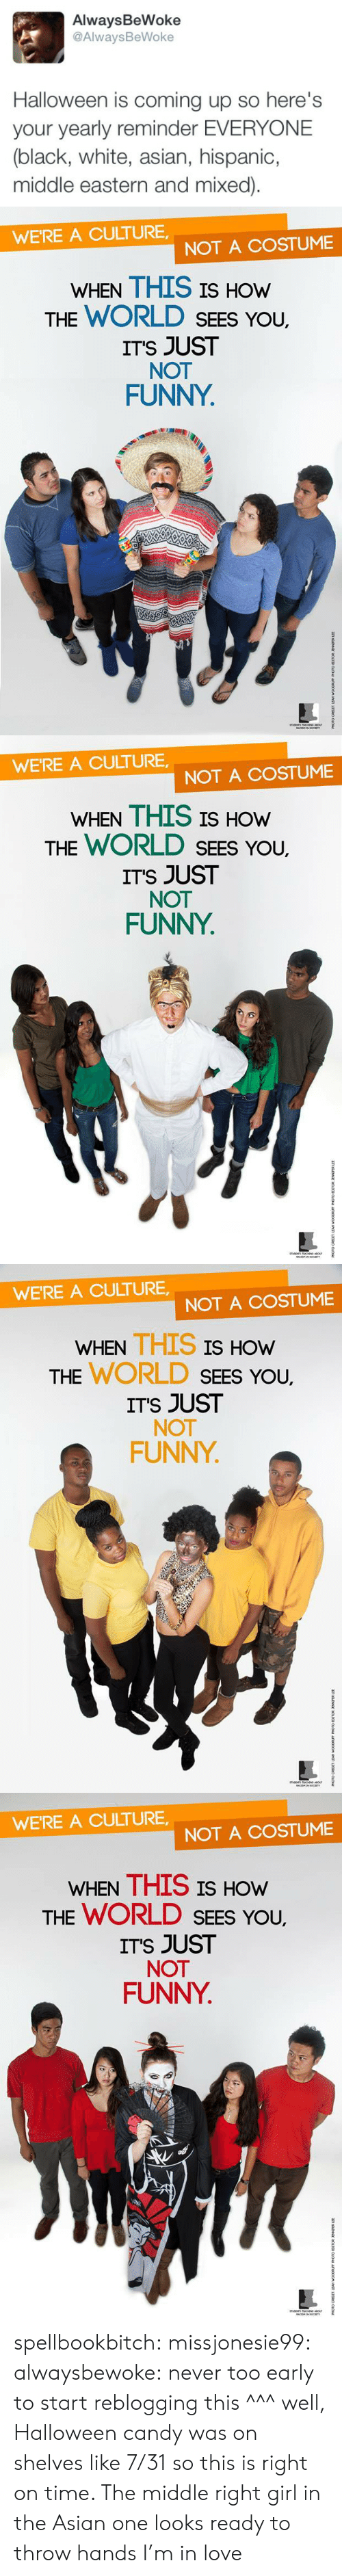 coming up: AlwaysBeWoke  @AlwaysBeWoke  Halloween is coming up so here's  your yearly reminder EVERYONE  (black, white, asian, hispanic,  middle eastern and mixed)   WE'RE A CULTURE  NOT A COSTUME  WHEN THIS IS HOW  THE WORLD SEES YoU.  ITS JUST  NOT  FUNNY   WE'RE A CULTURE  NOT A COSTUME  WHEN THIS IS HOW  THE WORLD SEES YoU.  ITS JUST  NOT  FUNNY   WE'RE A CULTURE,  NOT A COSTUME  WHEN THIS IS  HOW  THE WORLD SEEs You,  ITS JUST  NOT  FUNNY   WE'RE A CULTURE  NOT A COSTUME  WHEN THIS IS HOw  THE WORLD SEES You,  ITS JUST  NOT  FUNNY spellbookbitch:  missjonesie99:  alwaysbewoke:  never too early to start reblogging this  ^^^ well, Halloween candy was on shelves like 7/31 so this is right on time.    The middle right girl in the Asian one looks ready to throw hands I'm in love